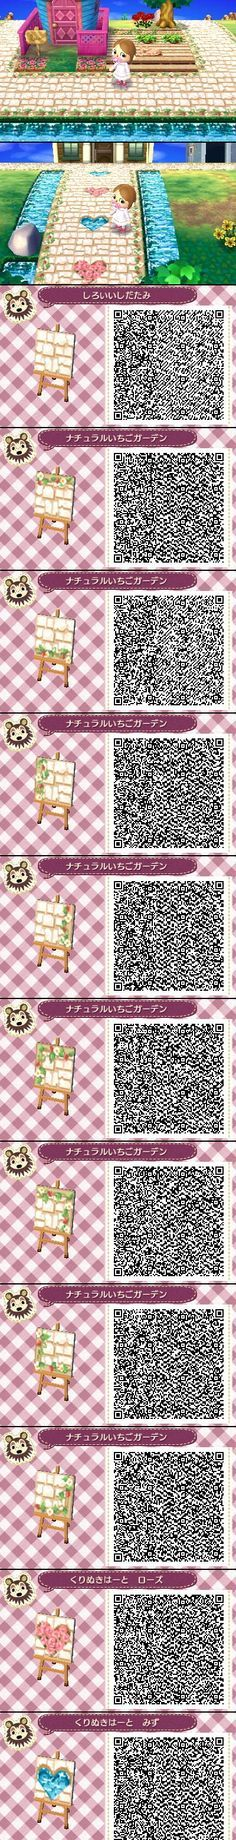 ACNL QR Code: Sand-colored Brick with Flowers